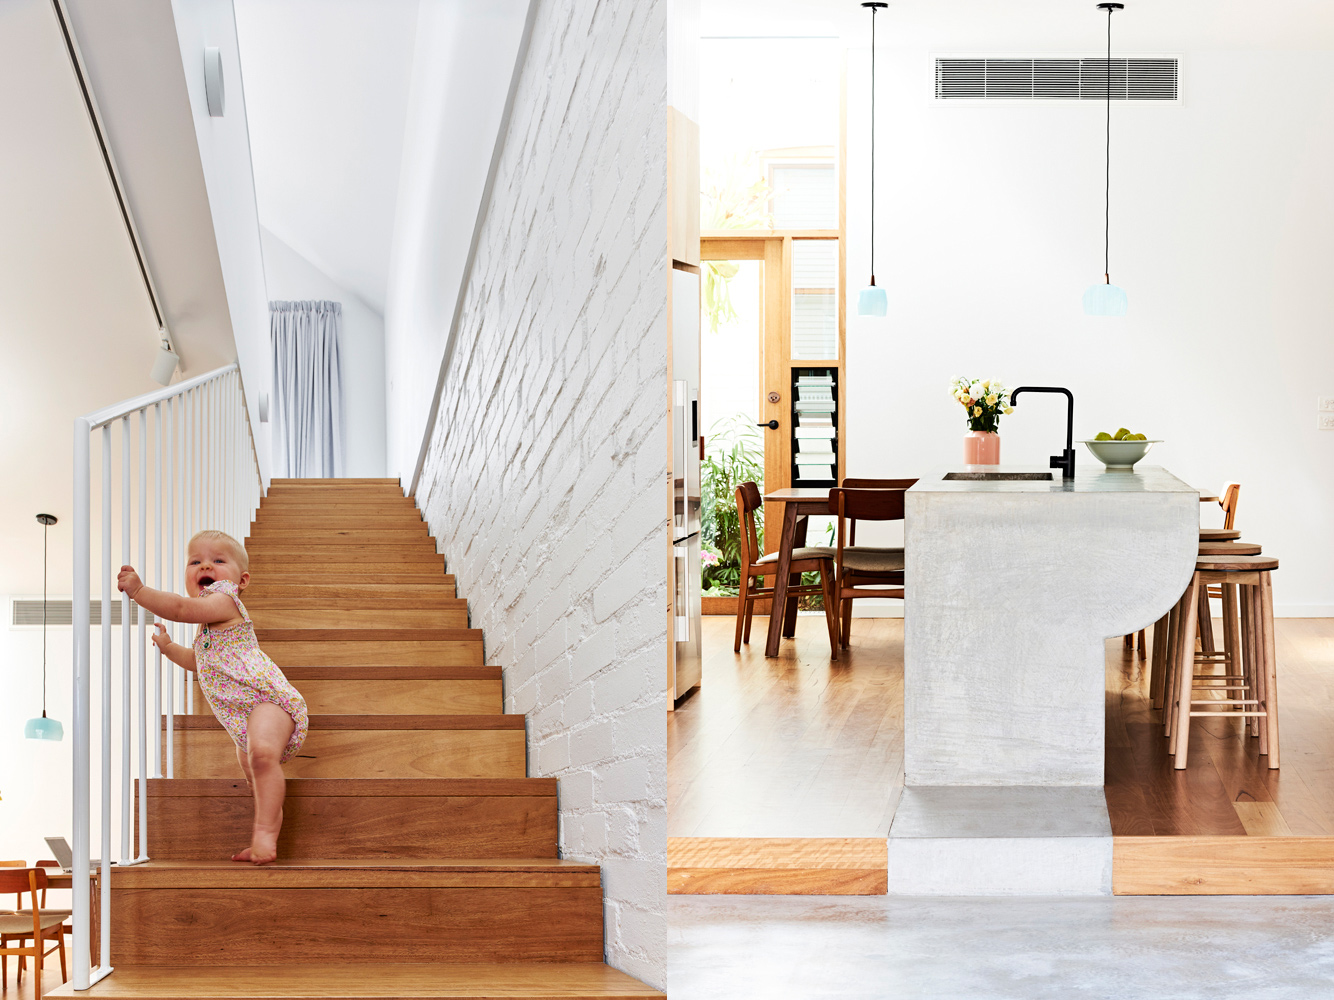 High House - Local Stairwell Timber - Dan Gayfer Design - Interior Archive